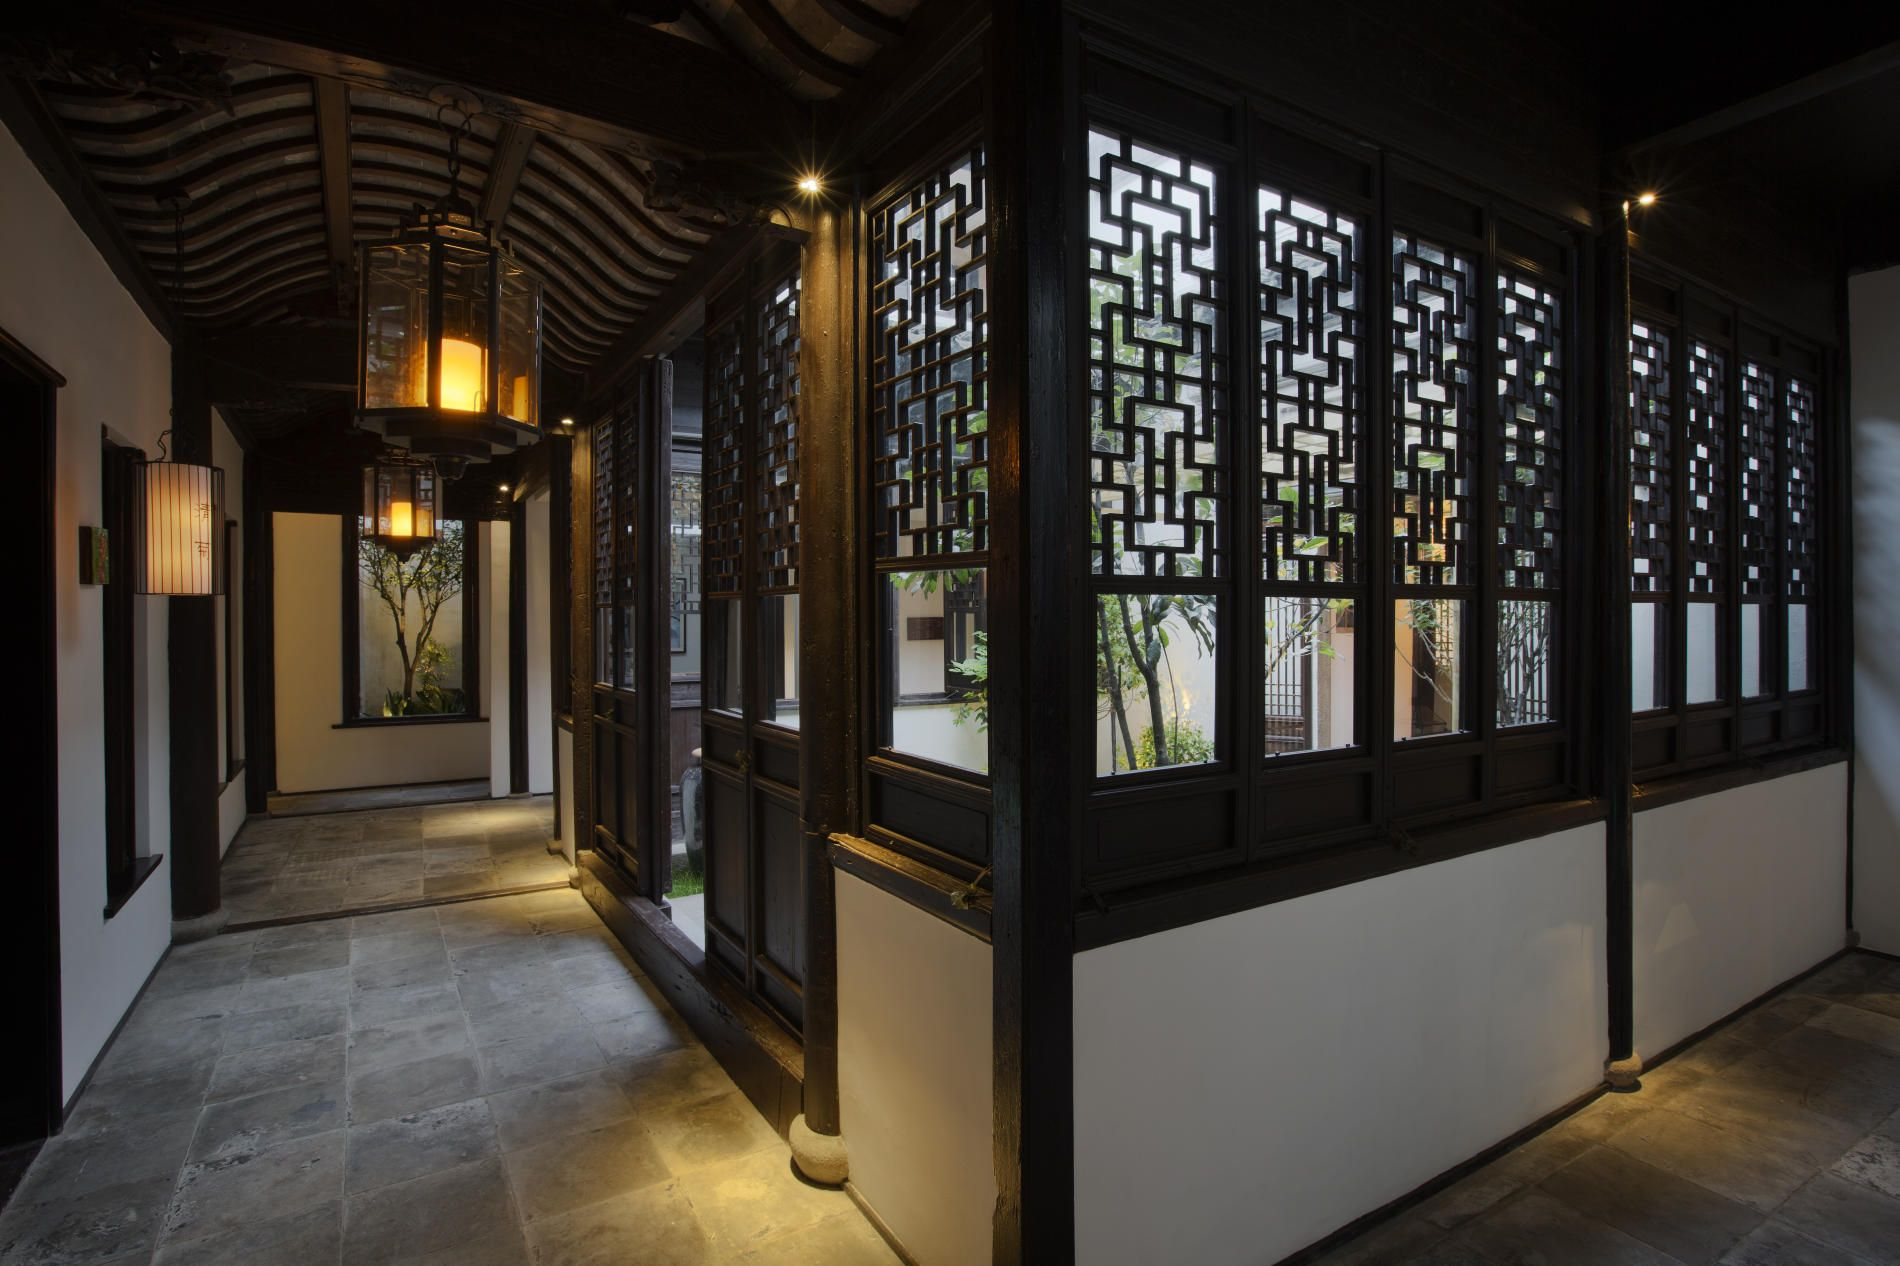 Traditional asian interior traditional asian interior design - Contemporary Tropical Modernism Interiors Traditional Style Hotel Google Search Chinese Architecturearchitecture Designchinese